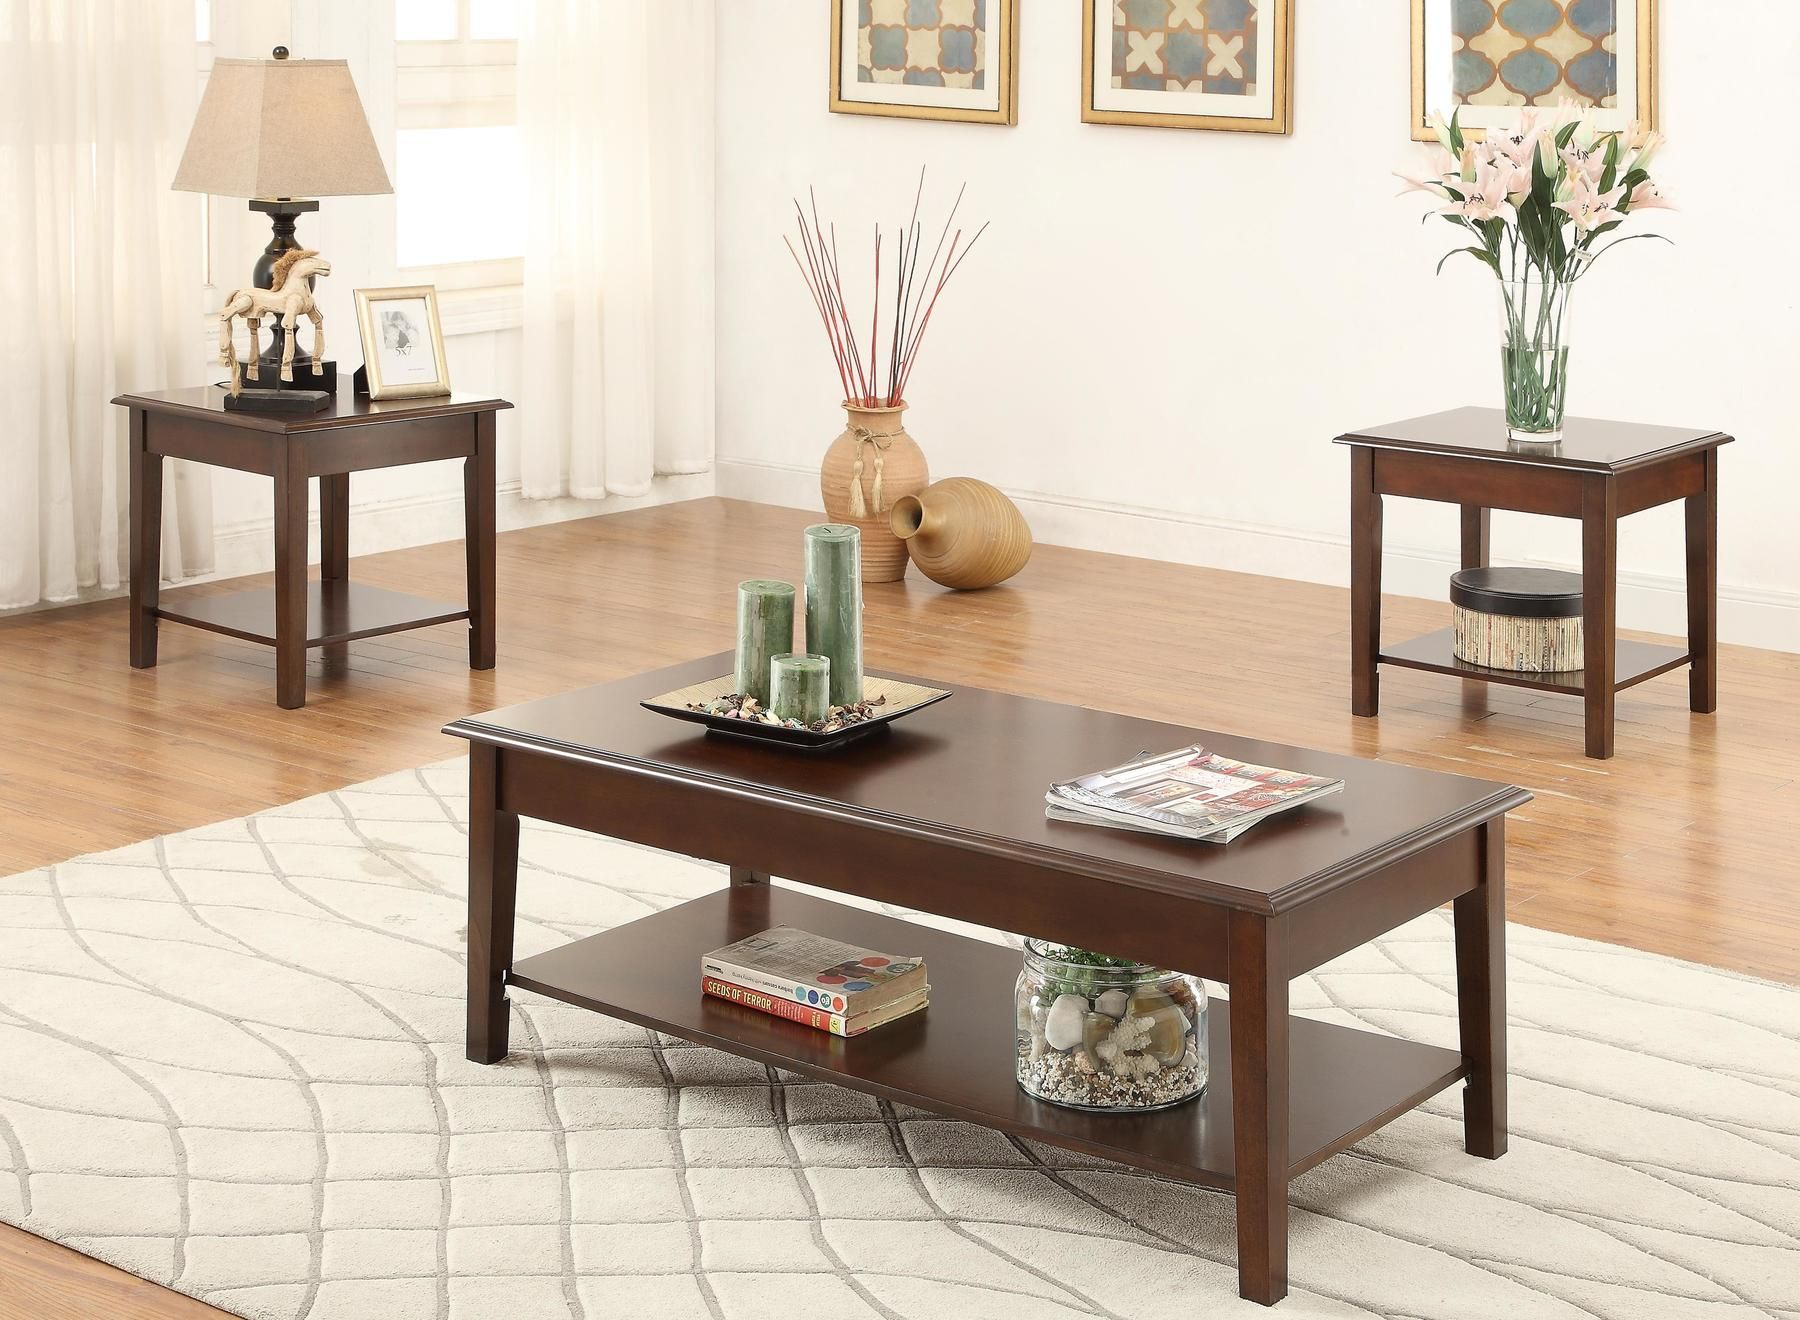 P3139 Coffee Table 2 End Tables F3139 Poundex Coffee Tables In 2021 Coffee Table 3 Piece Coffee Table Set Coffee Table Wood [ 1320 x 1800 Pixel ]